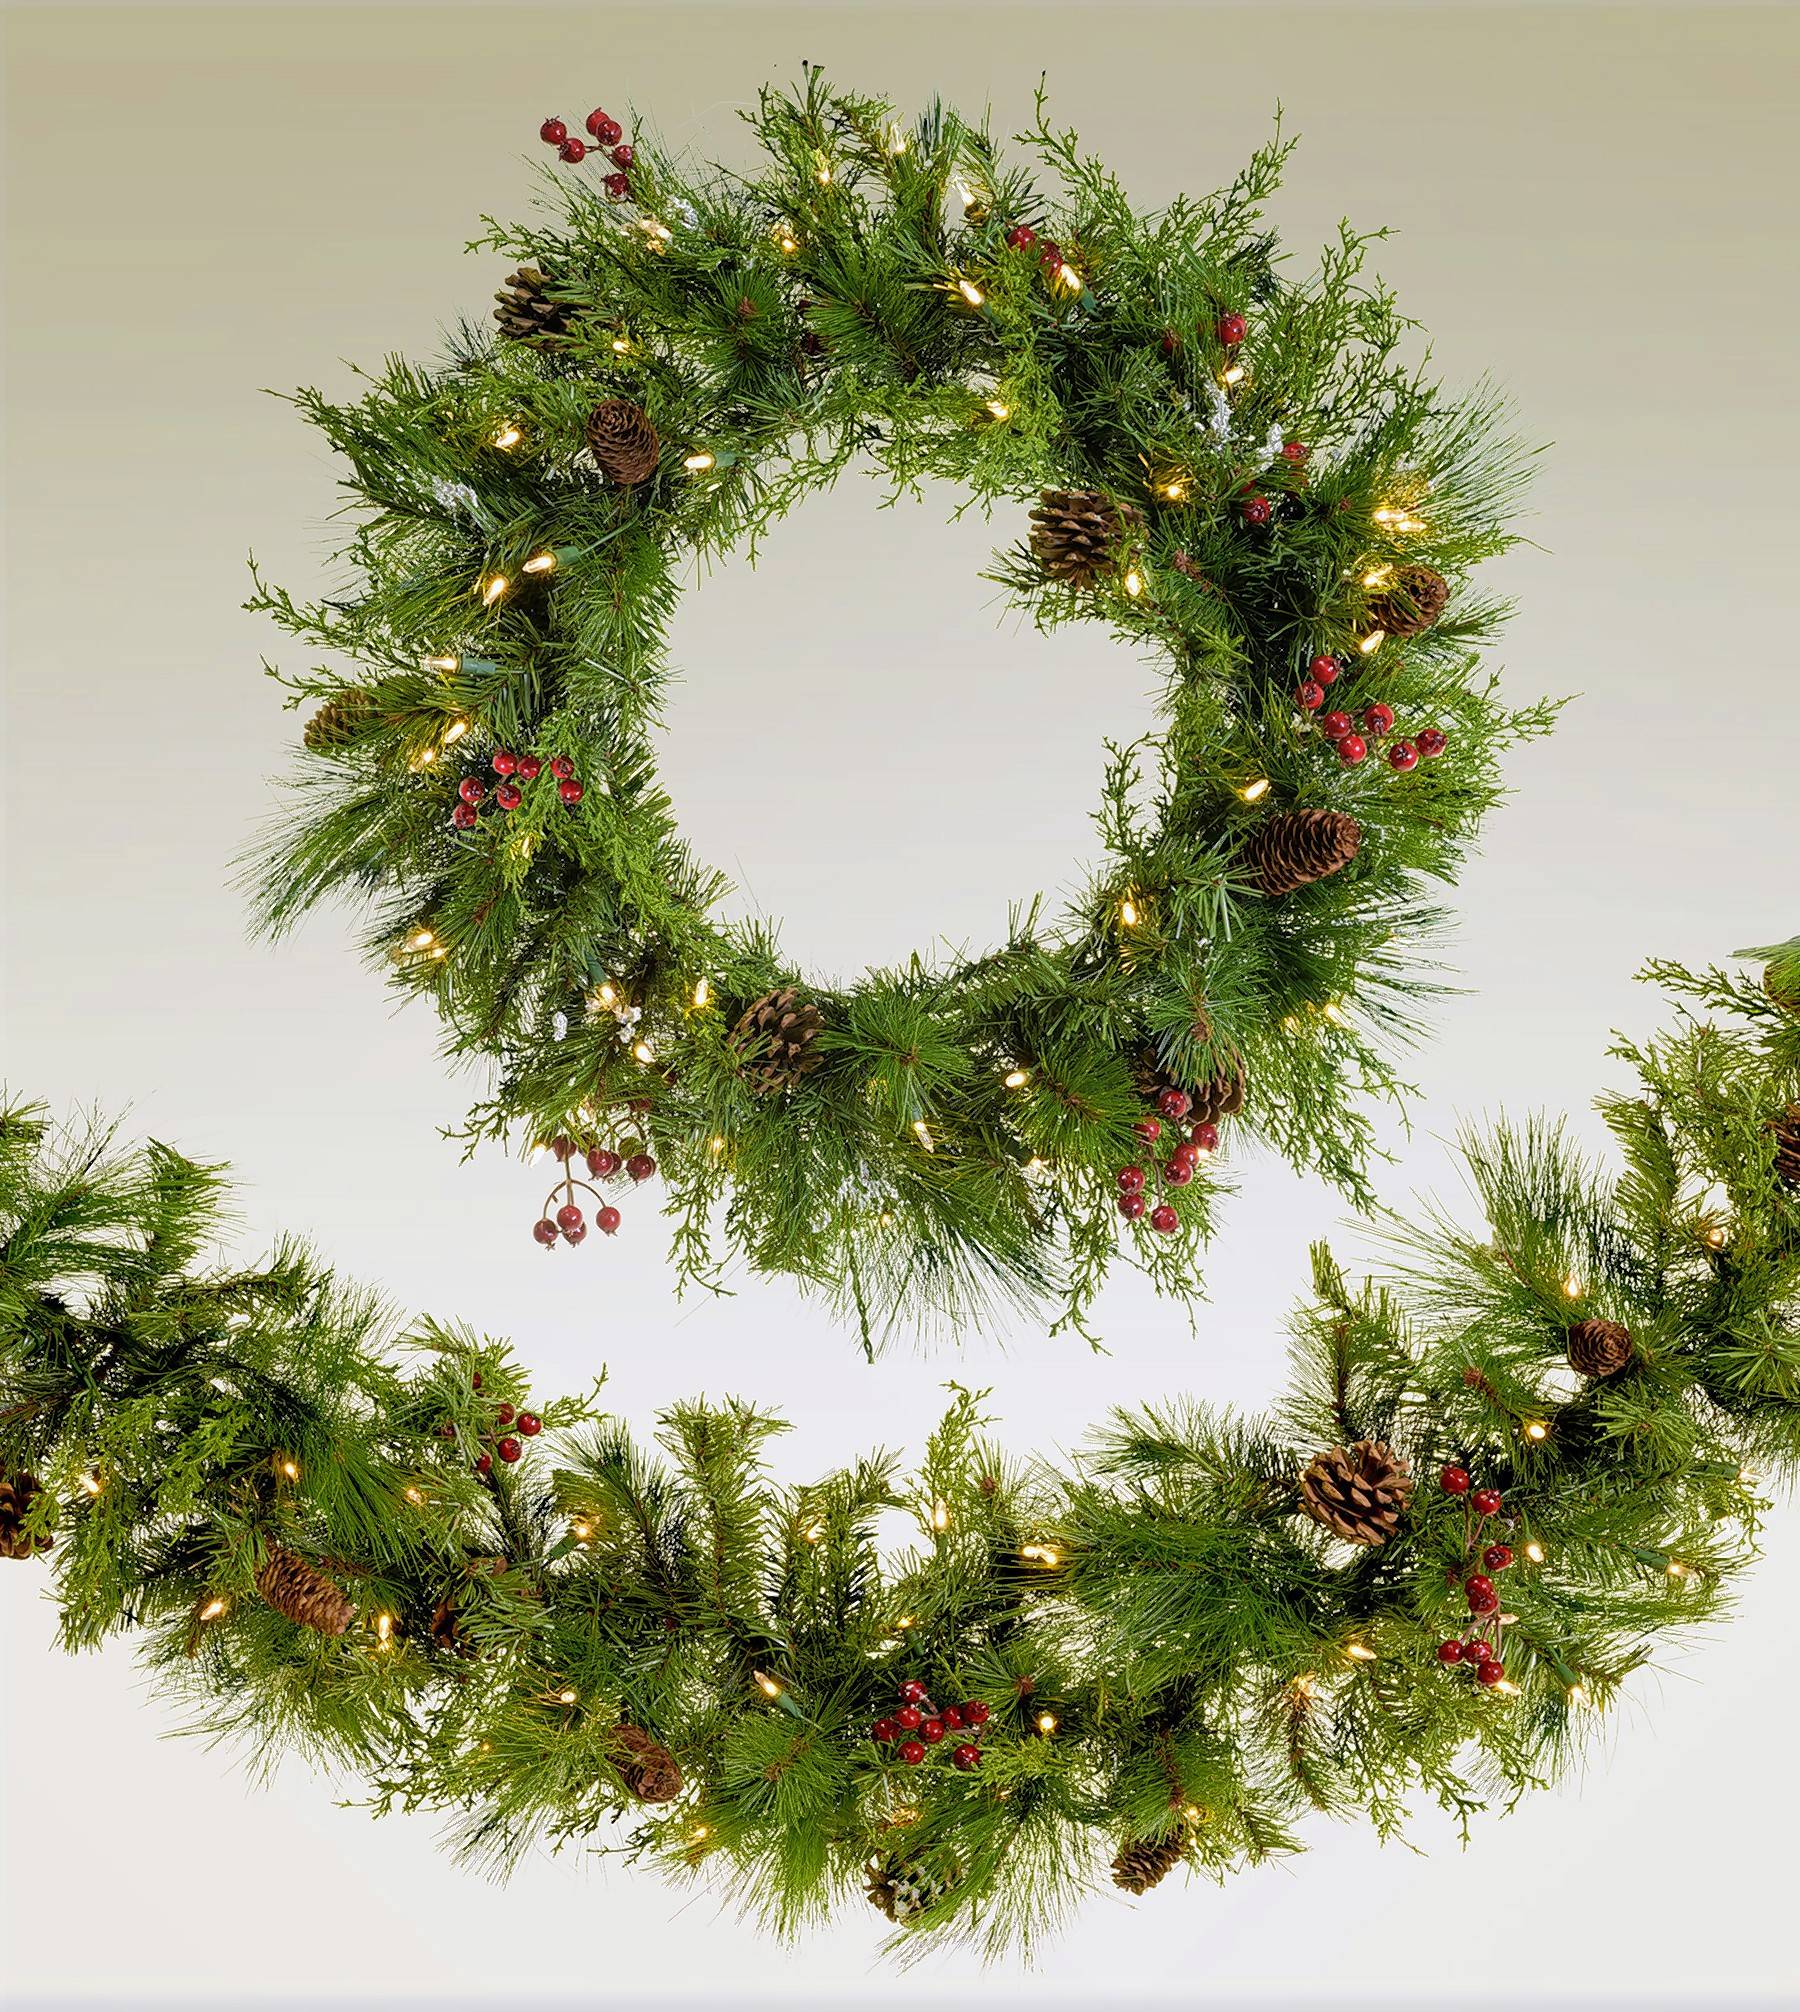 Matching wreath and garland.